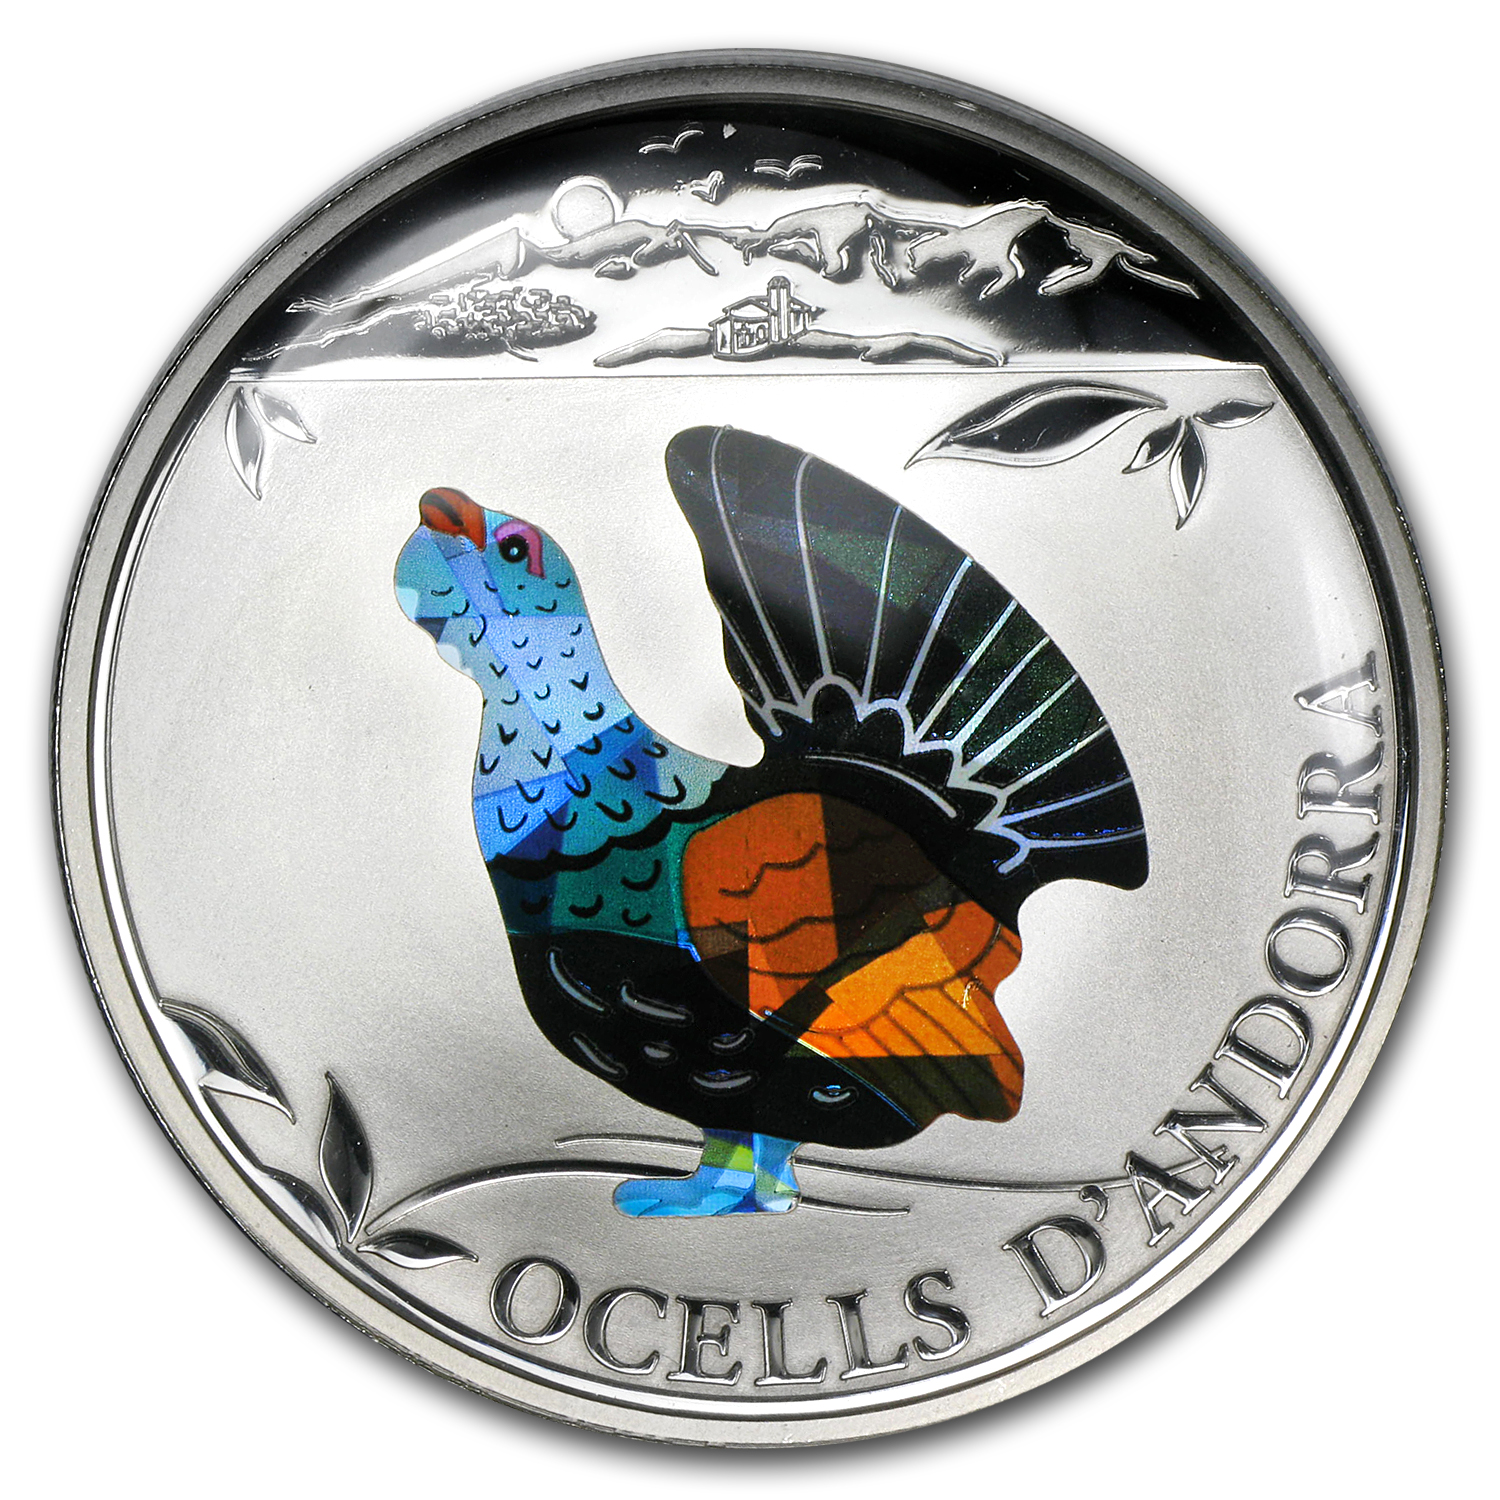 Andorra 2012 Proof Silver 5 Diners Prism Birds - Capercaillie